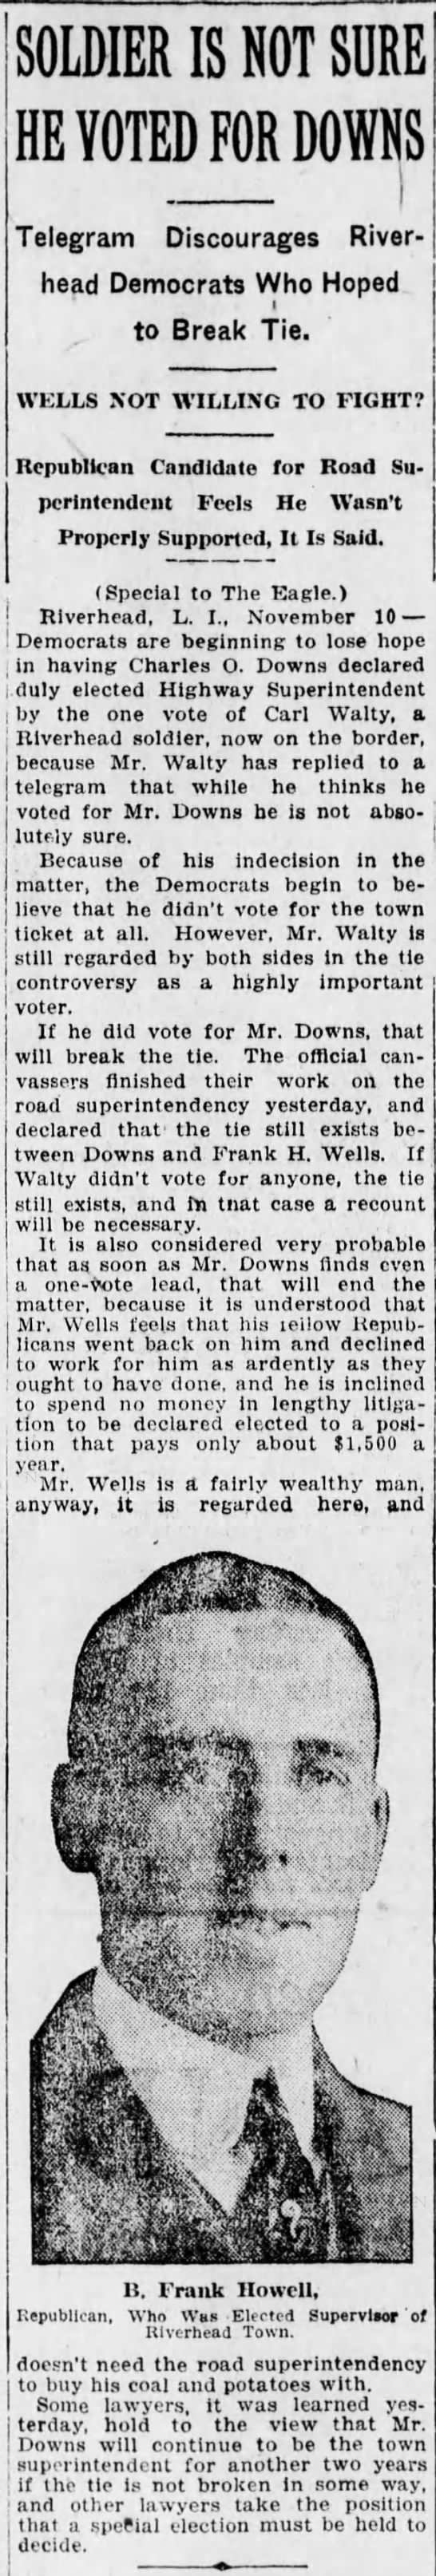 Nov 10,1916 Charles O Downs ..Recount up in the aur if he won Brooklyn Eagle  -